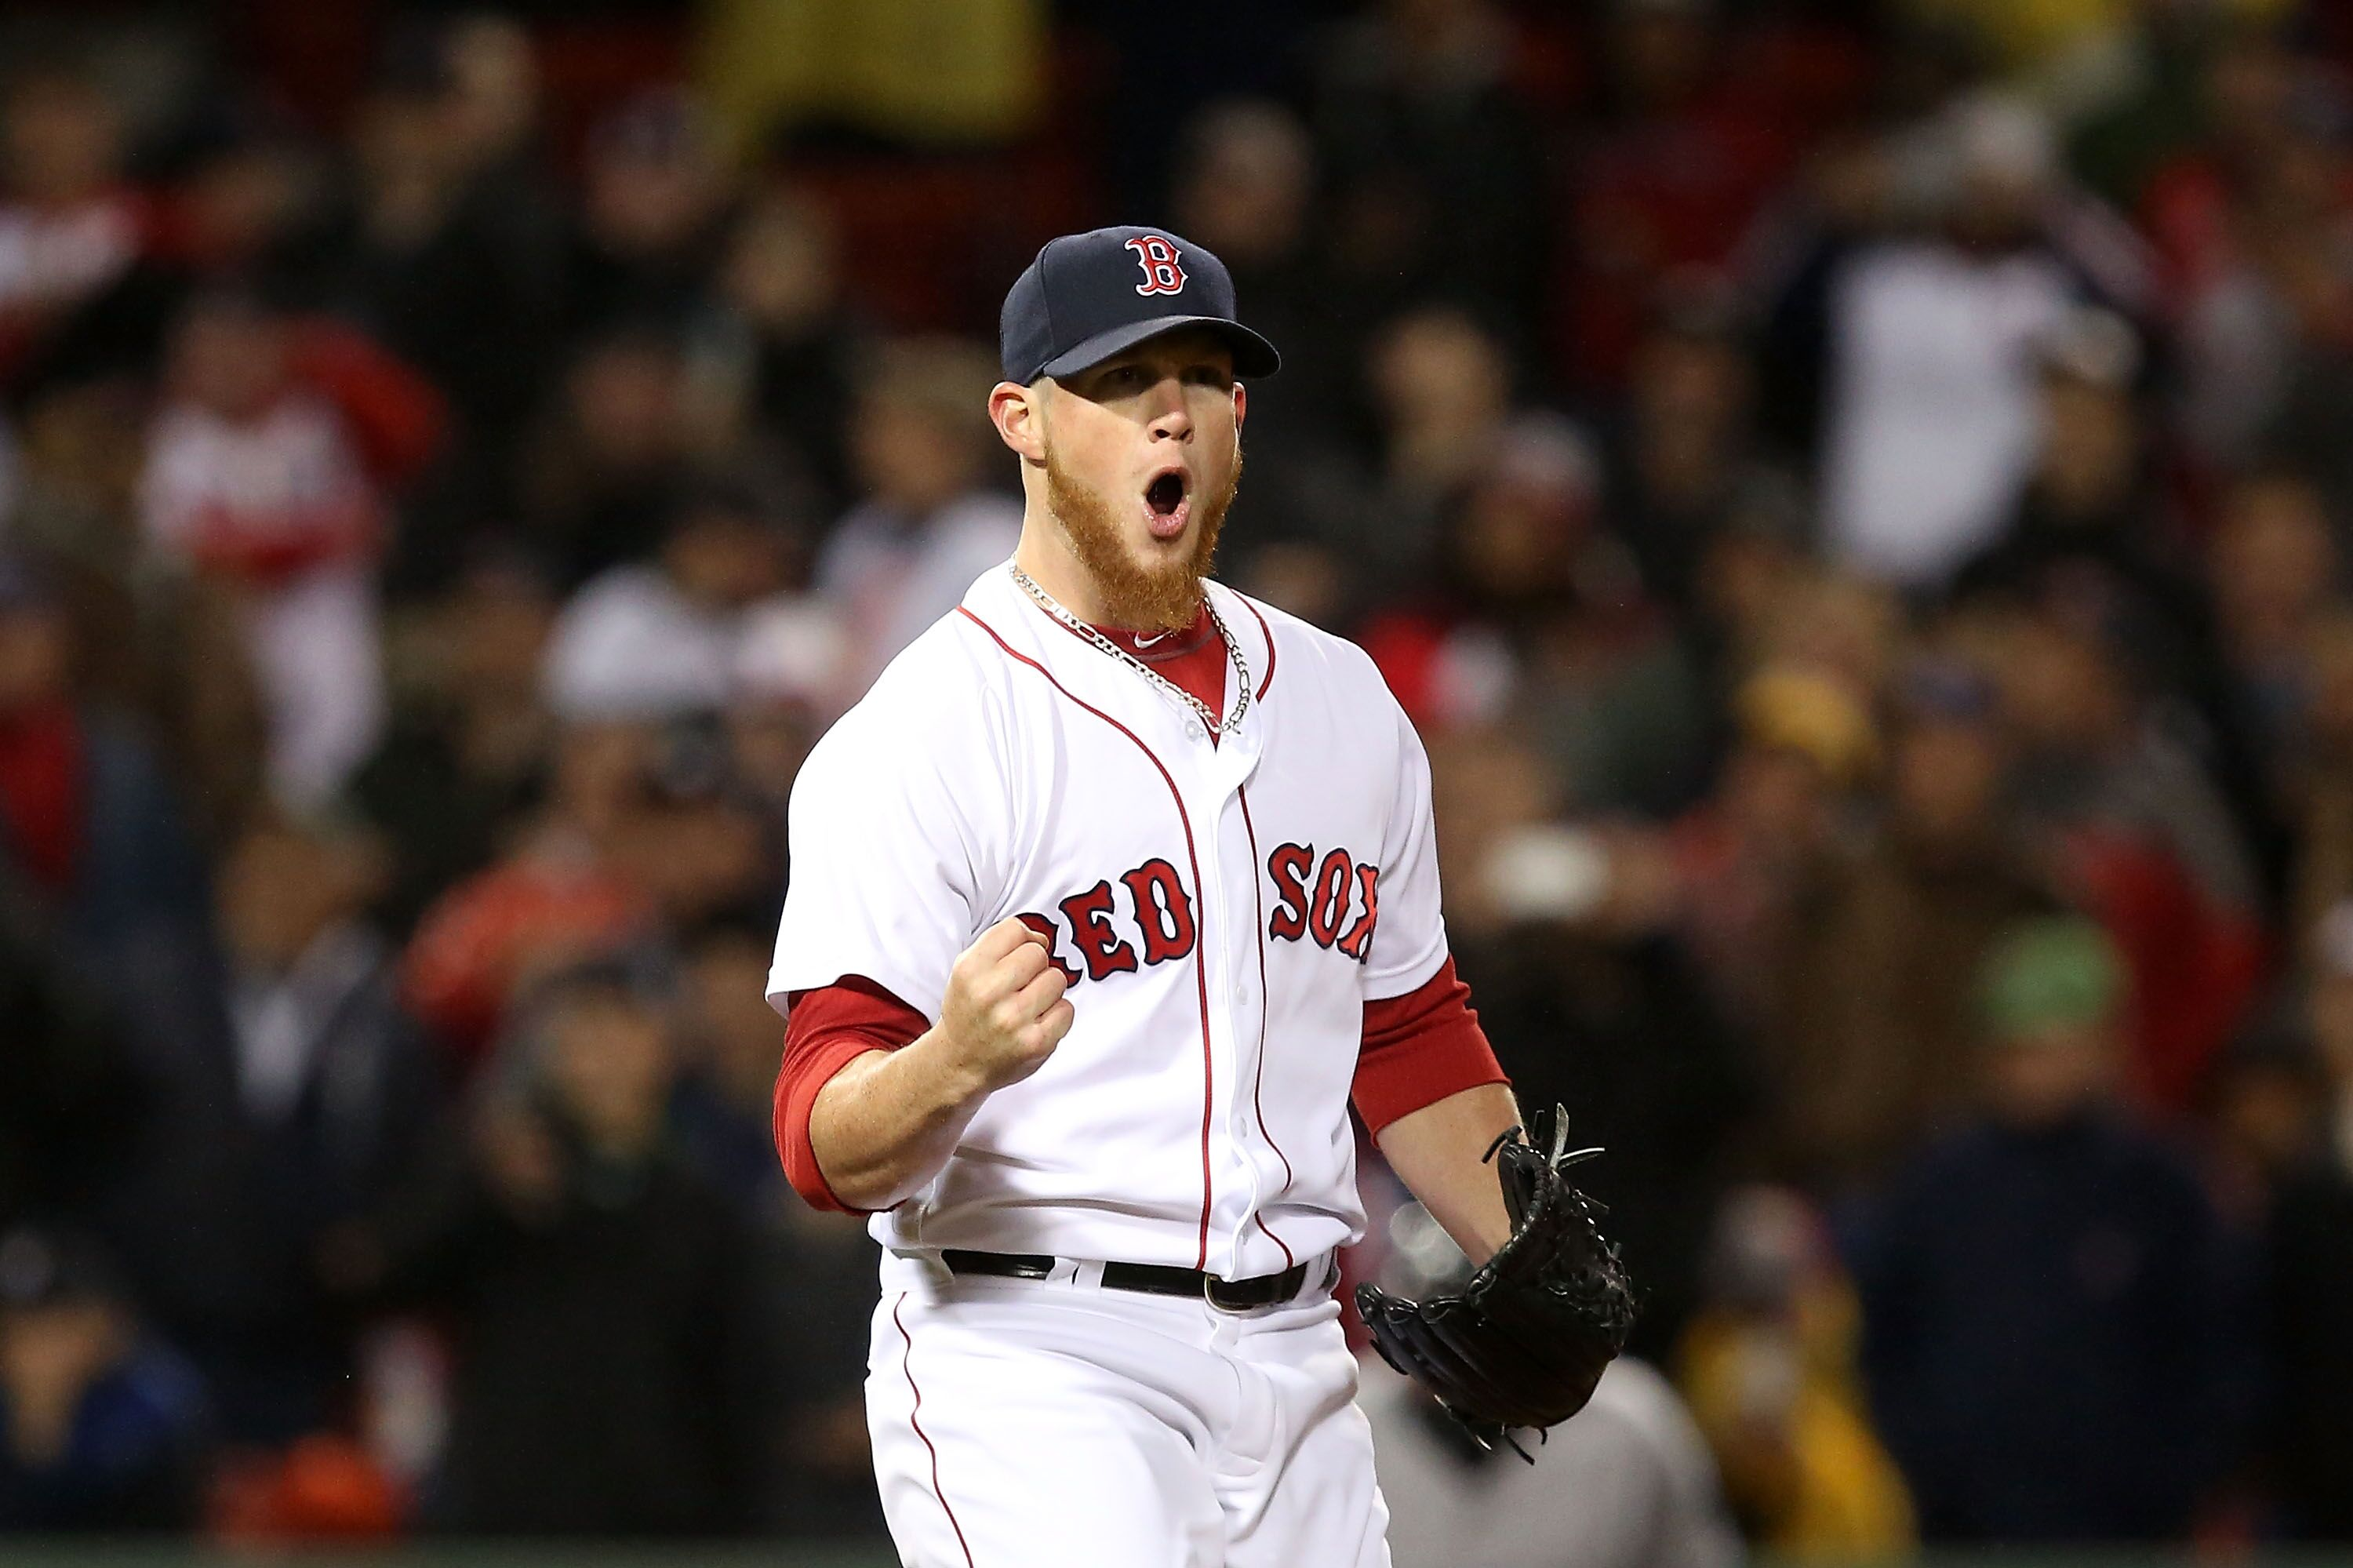 Red Sox: Craig Kimbrel earns the win in 2017 MLB All-Star Game